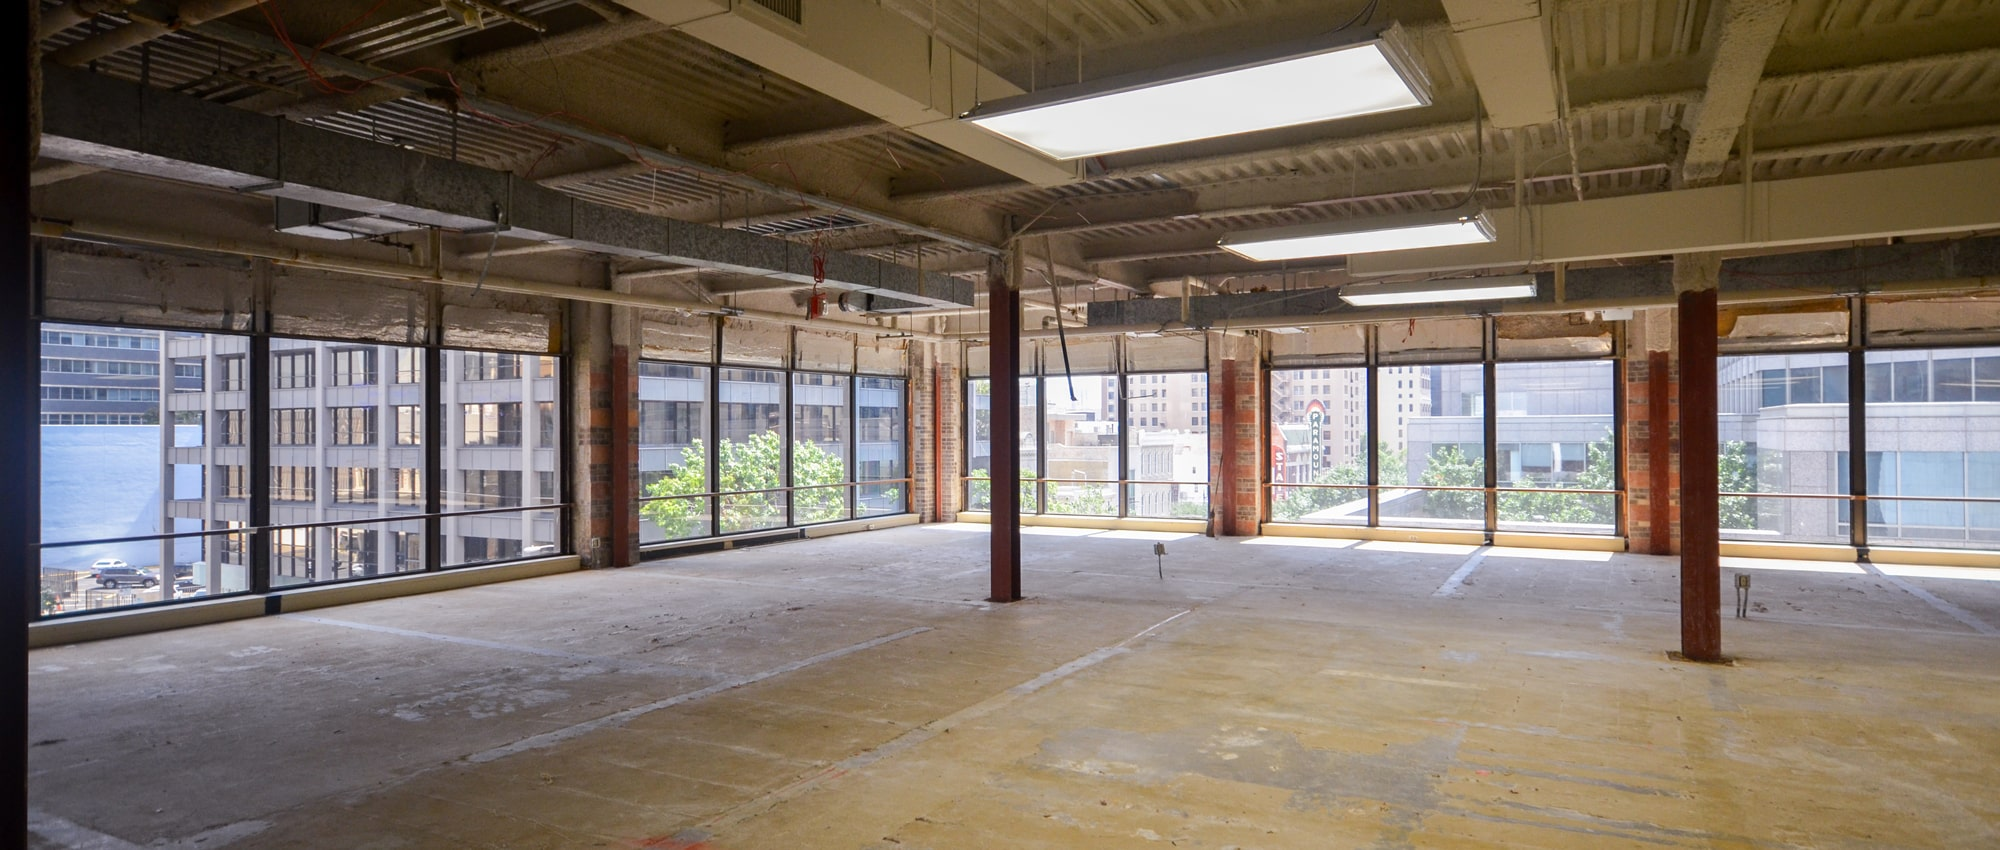 900 Congress Office Space | Office Space for Lease in Austin, Texas